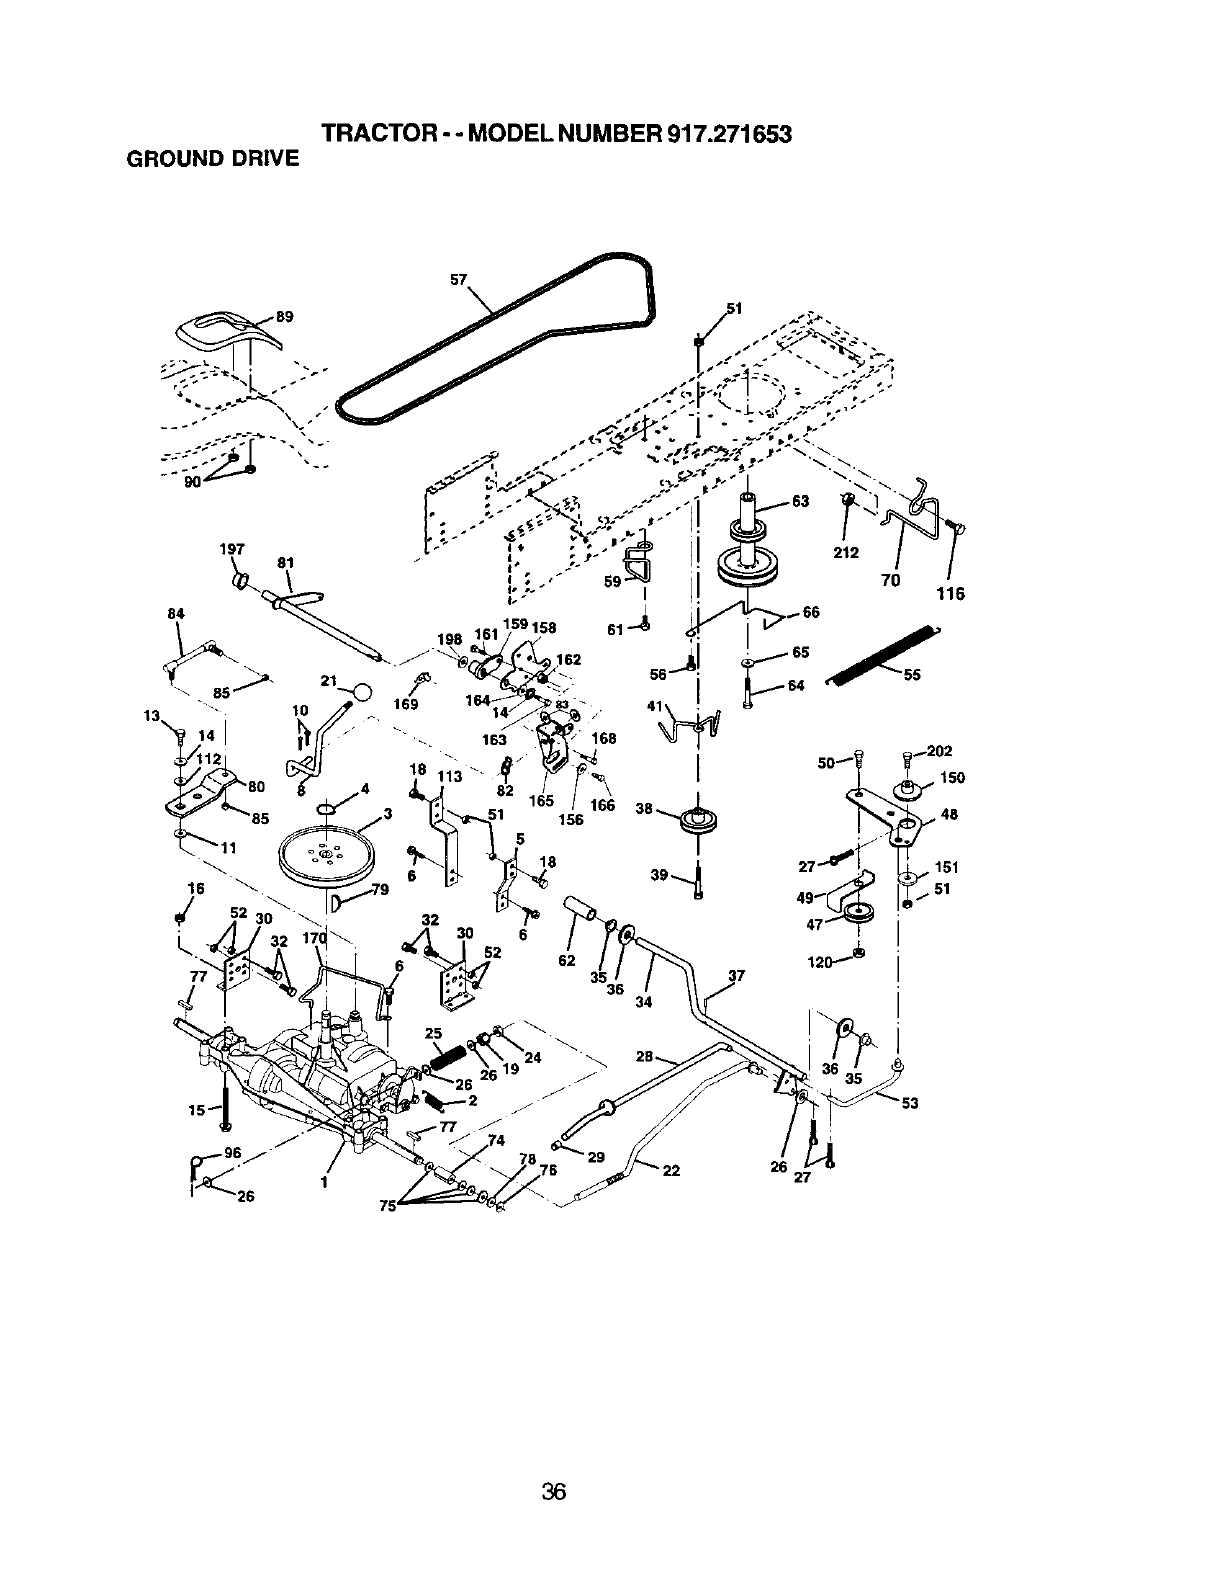 Page 36 of Craftsman Lawn Mower 917.271653 User Guide